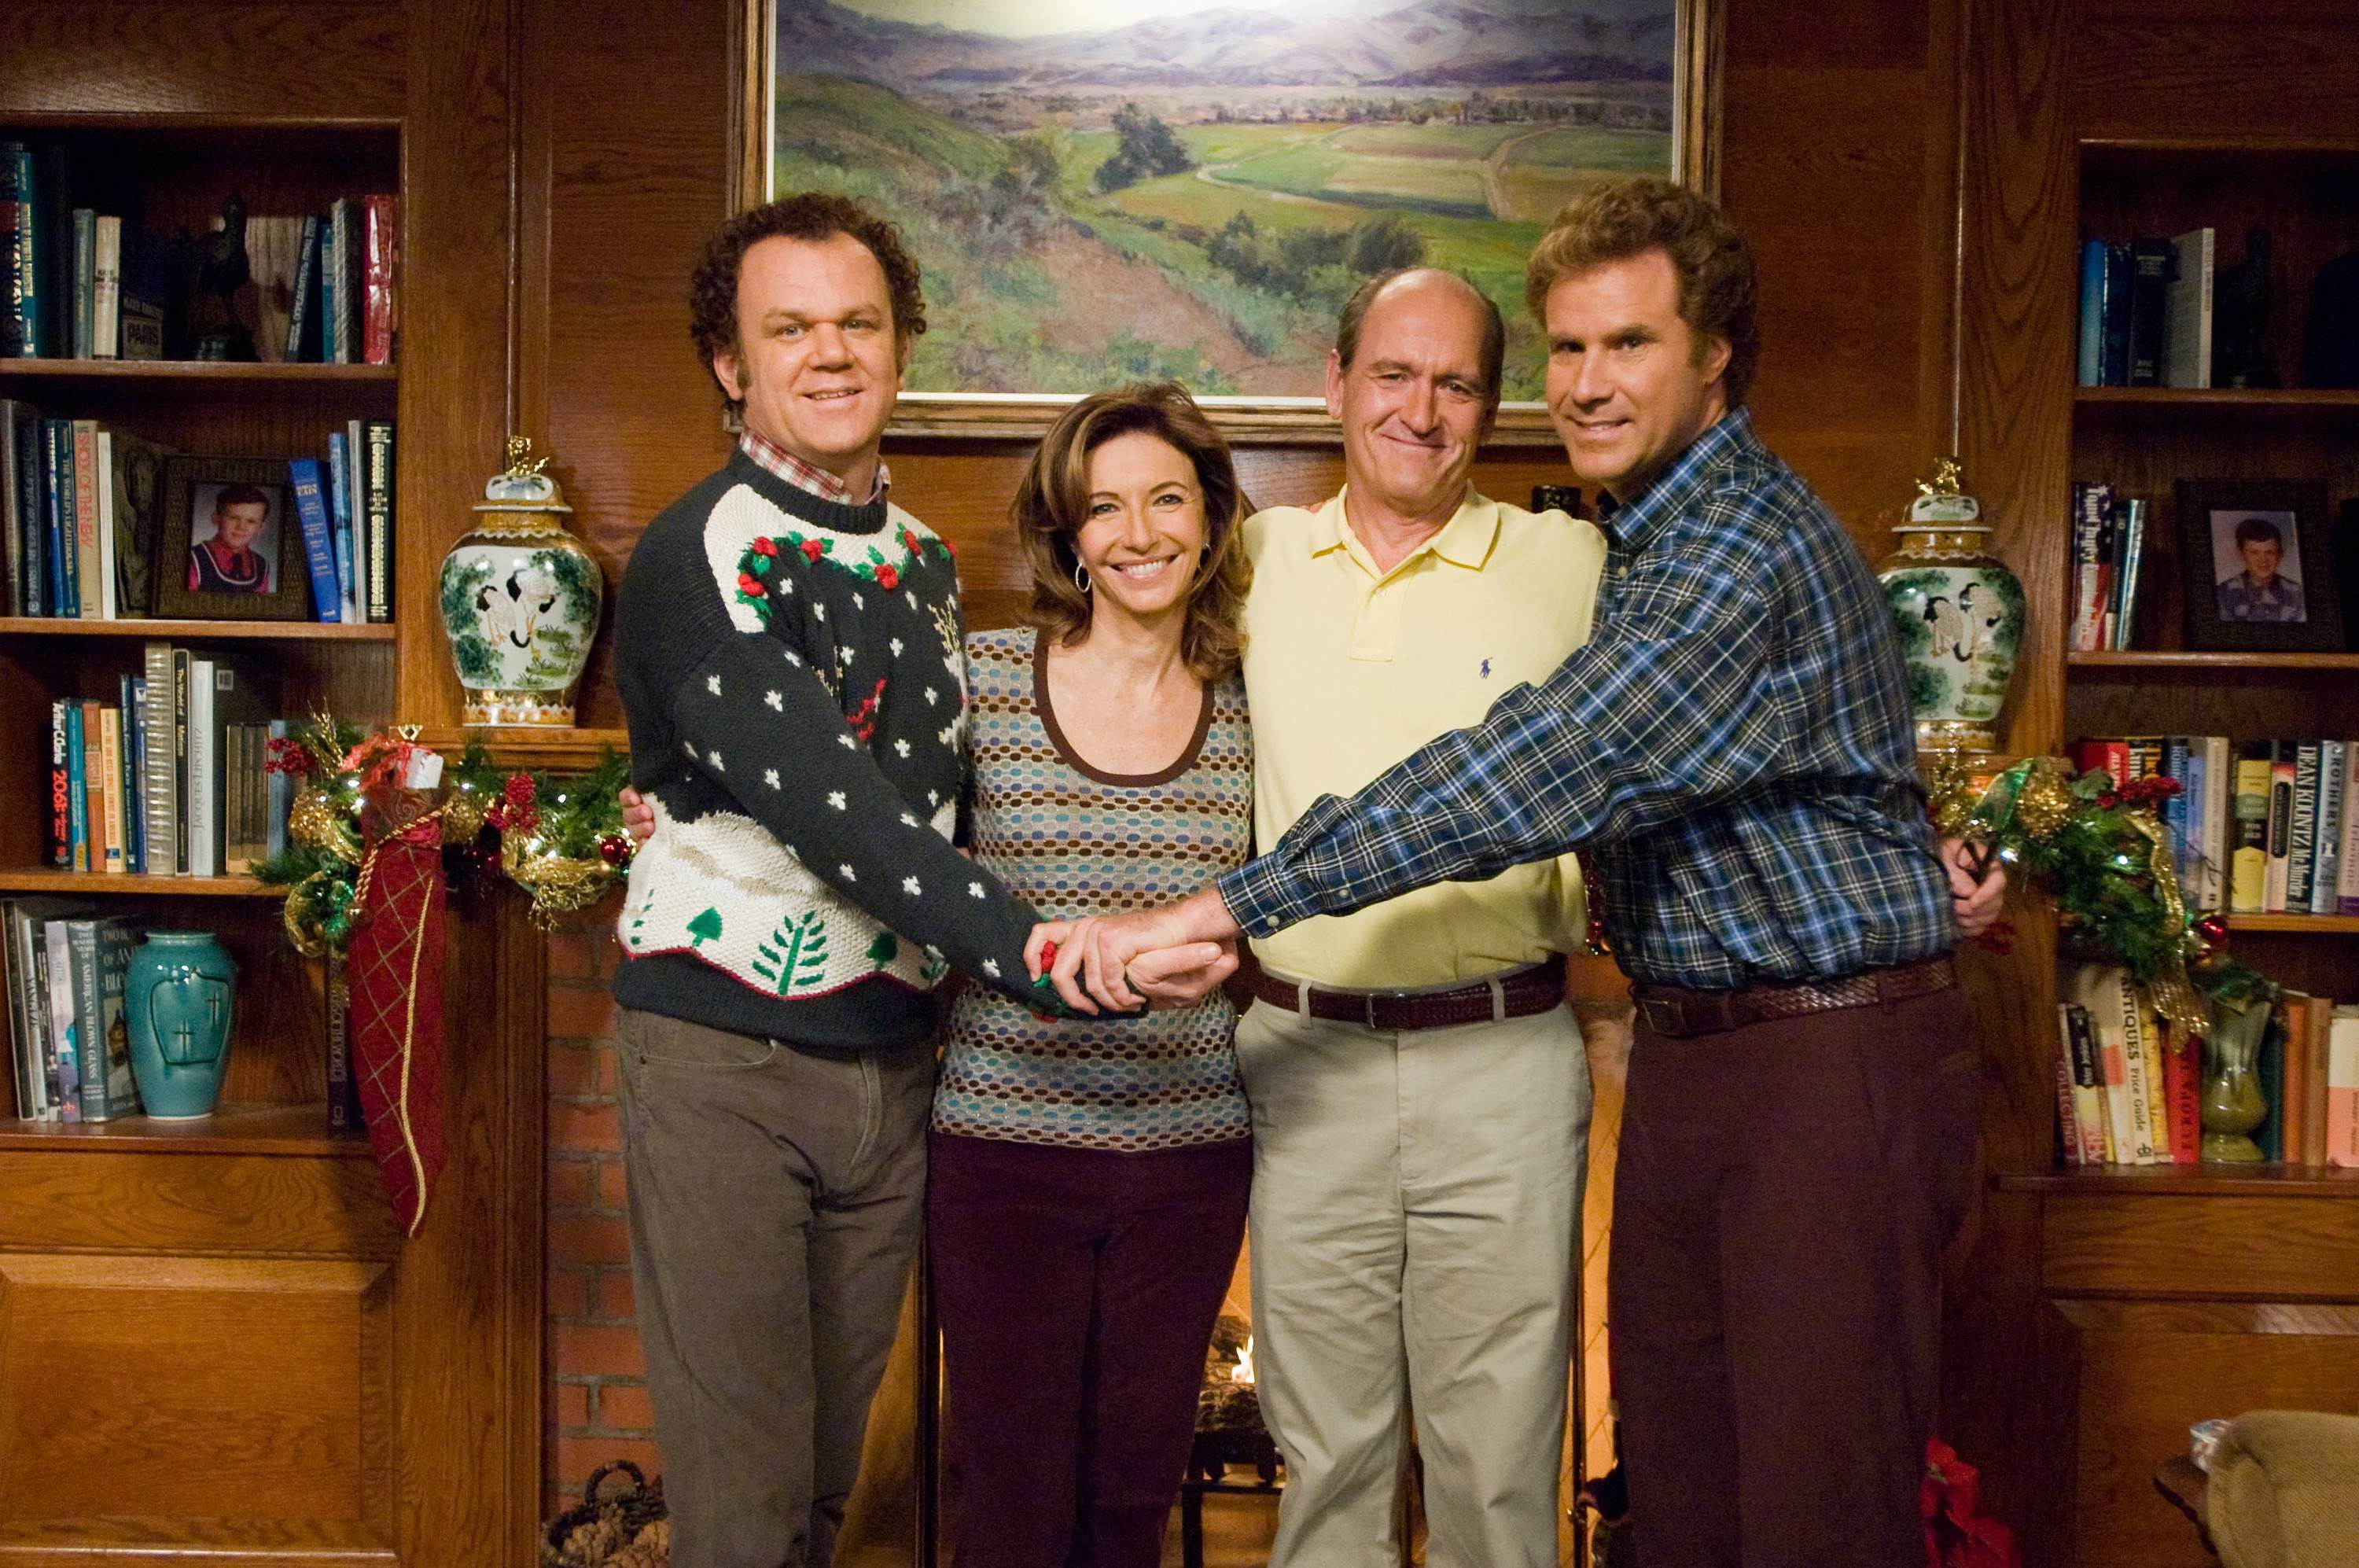 The Ugliest Christmas Sweaters to Make it to the Big Screen